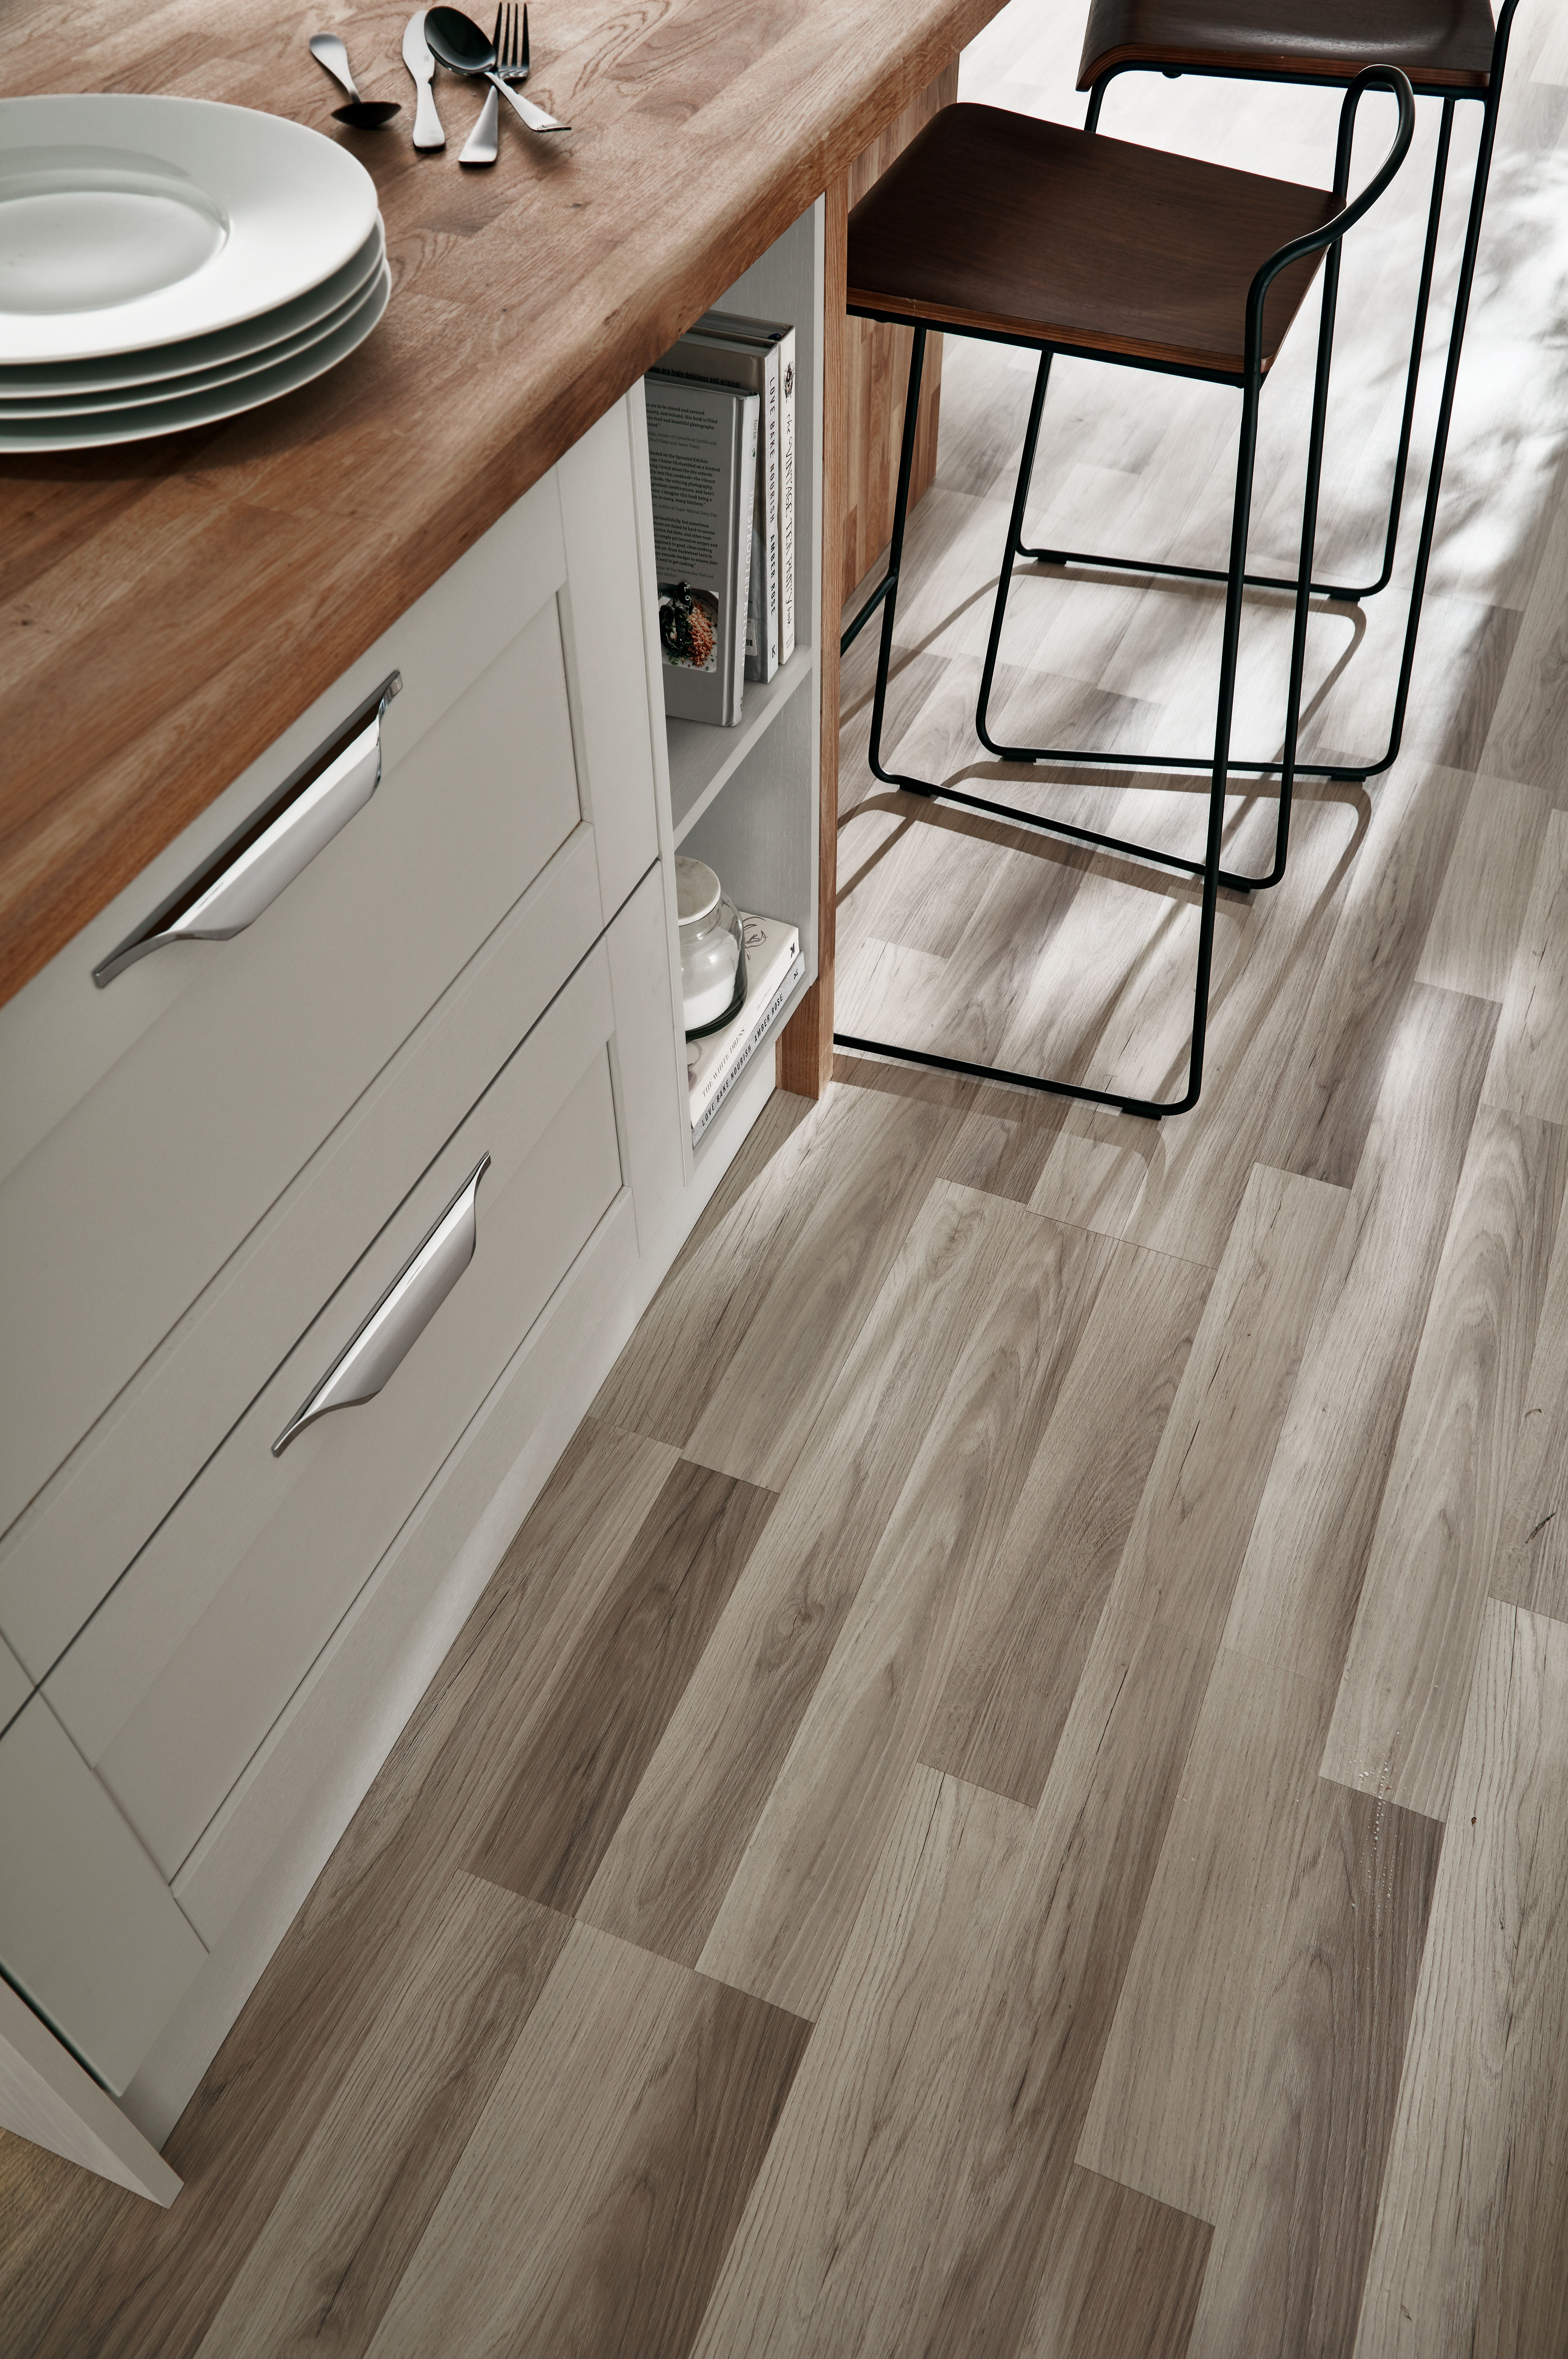 Fairford Dove Grey Kitchen From The Shaker Collection By Howdens Joinery Home Design